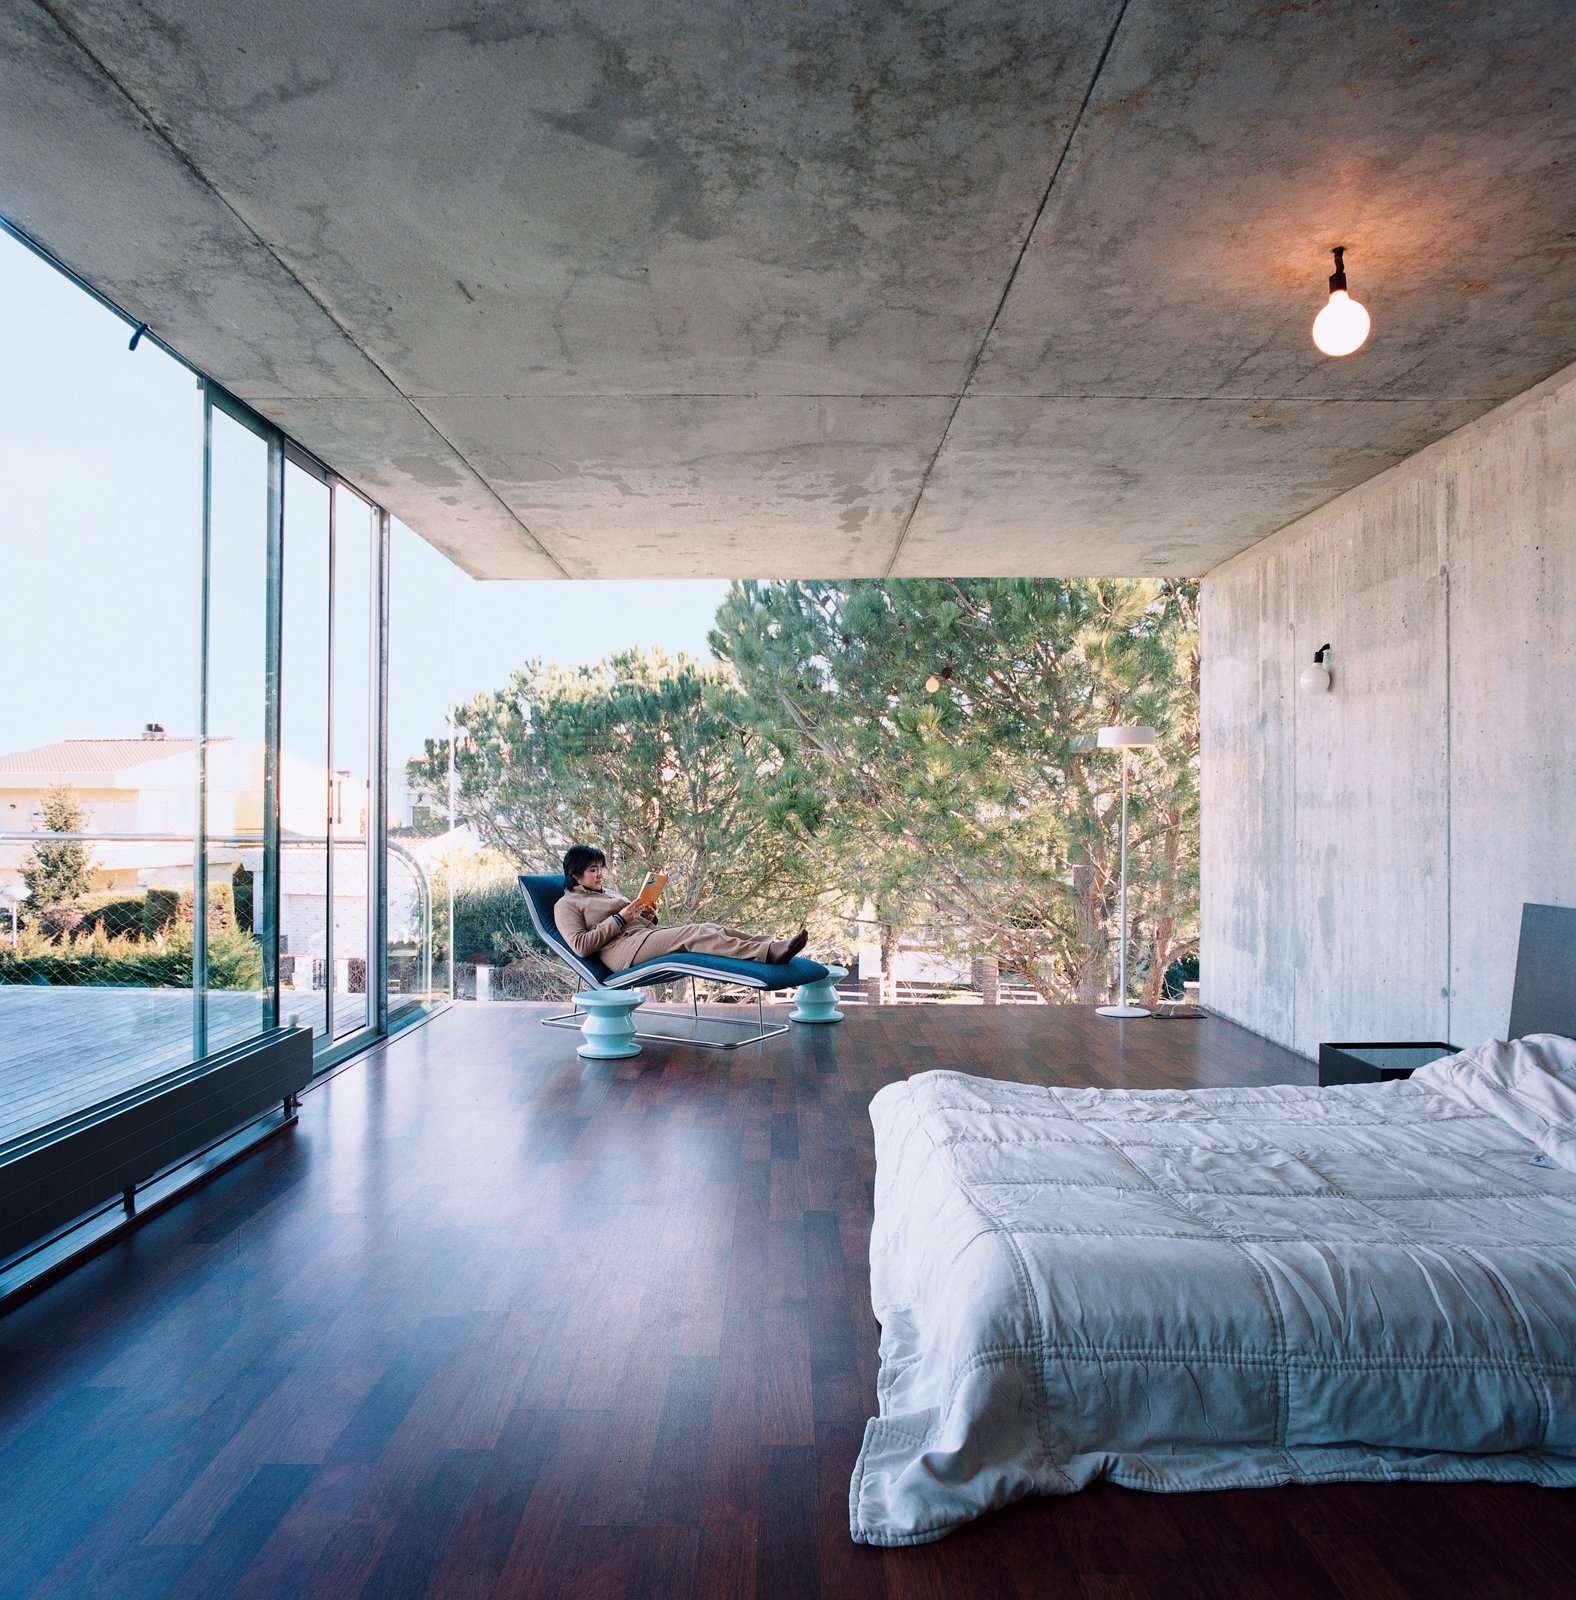 Bedroom, Bed, Chair, Ceiling Lighting, and Dark Hardwood Floor Giovanna de Uzin Fontecha relaxes in the master bedroom on a Leaf chaise by Claesson-Koivisto-Rune for Living Divani.  Striking Exposed Concrete Interiors by William Harrison from Suburban House of the Future by Cloud9